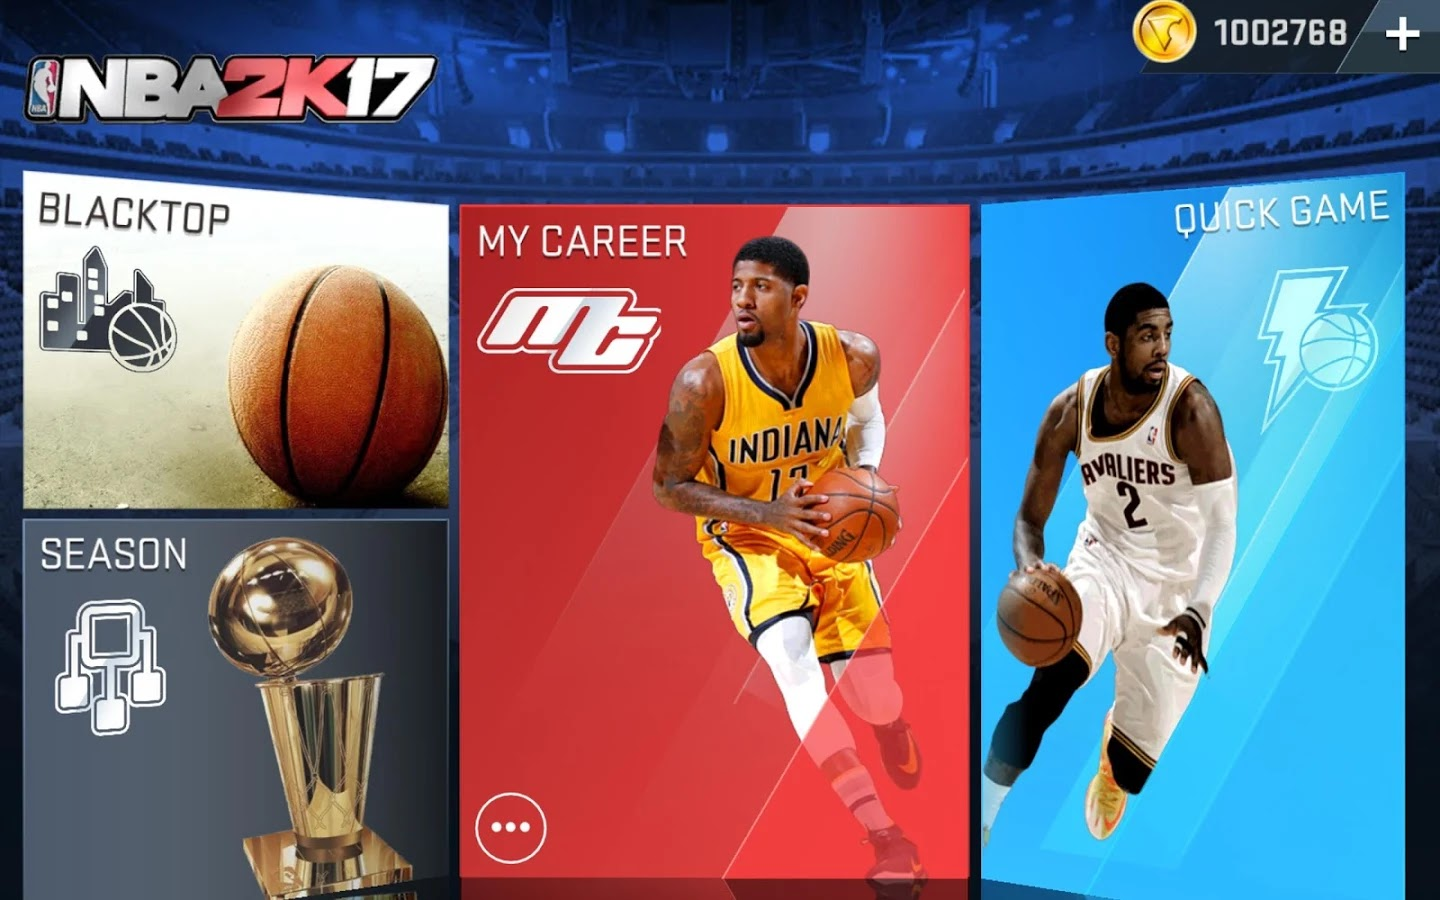 download nba 2k17 for android apk data